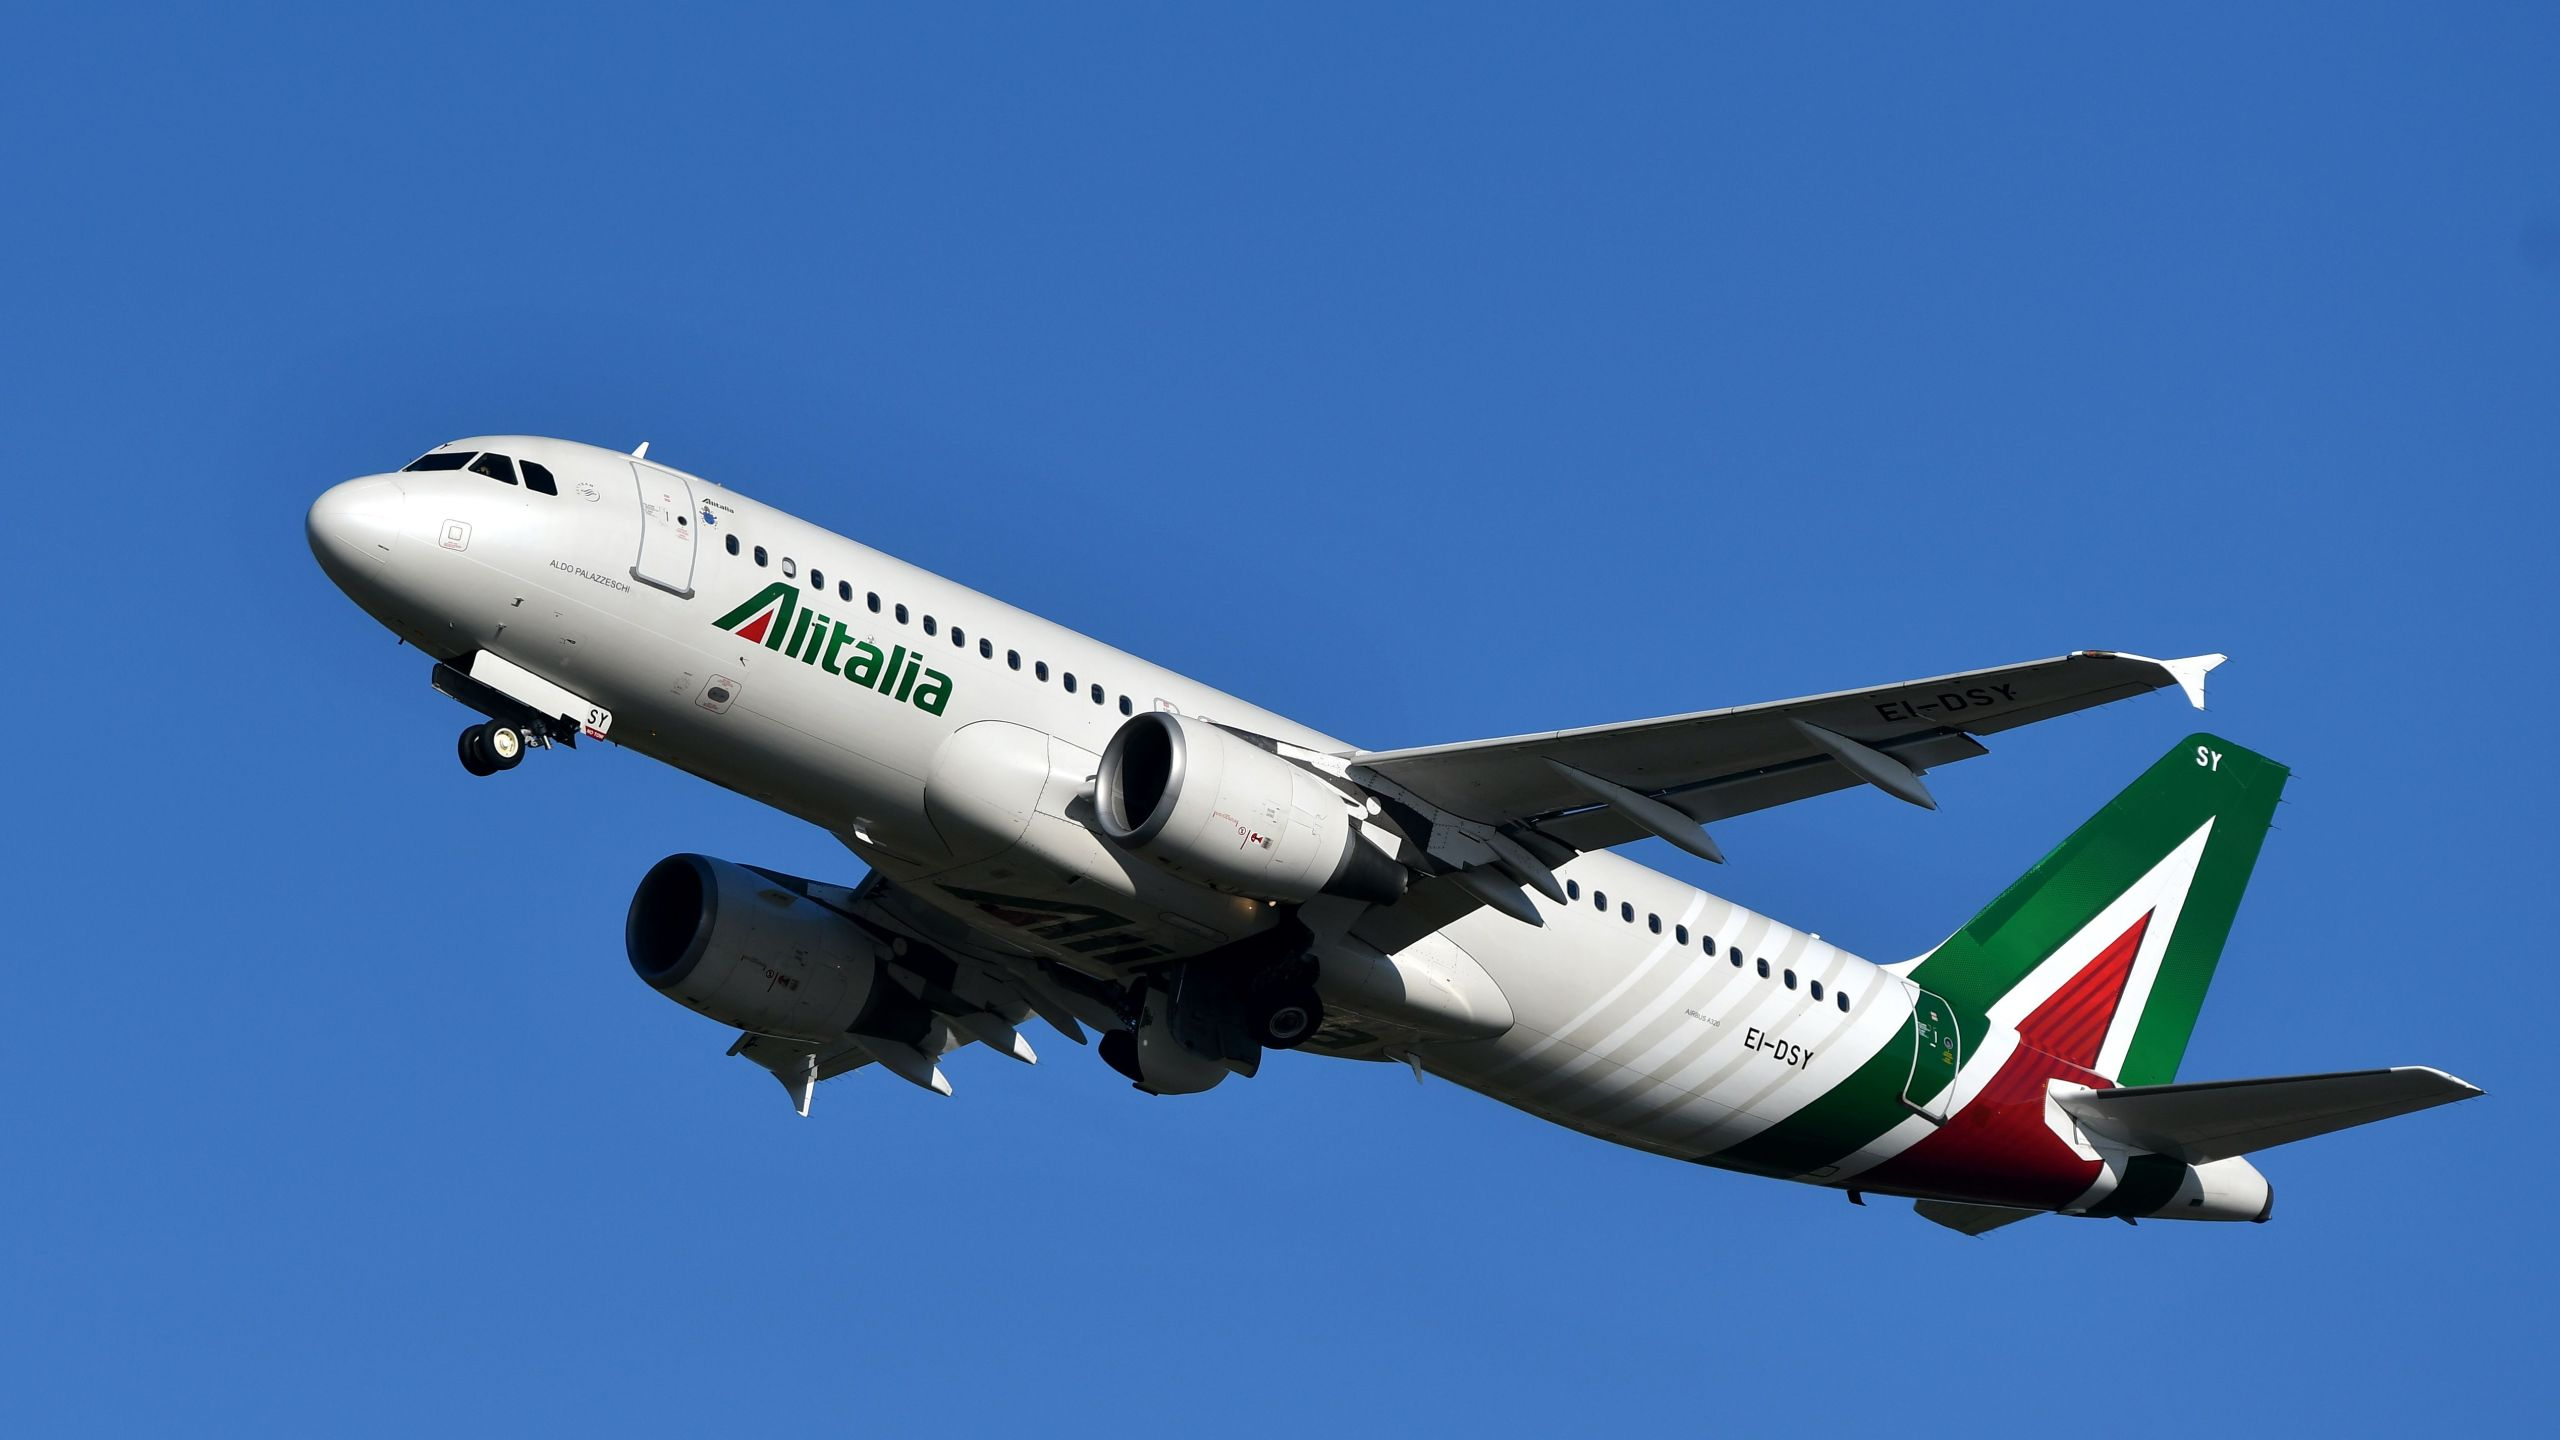 An Alitalia airline plane takes off from Rome's Fiumicino airport on May 31, 2019. (Credit: Alberto Pizzoli/AFP/Getty Images)